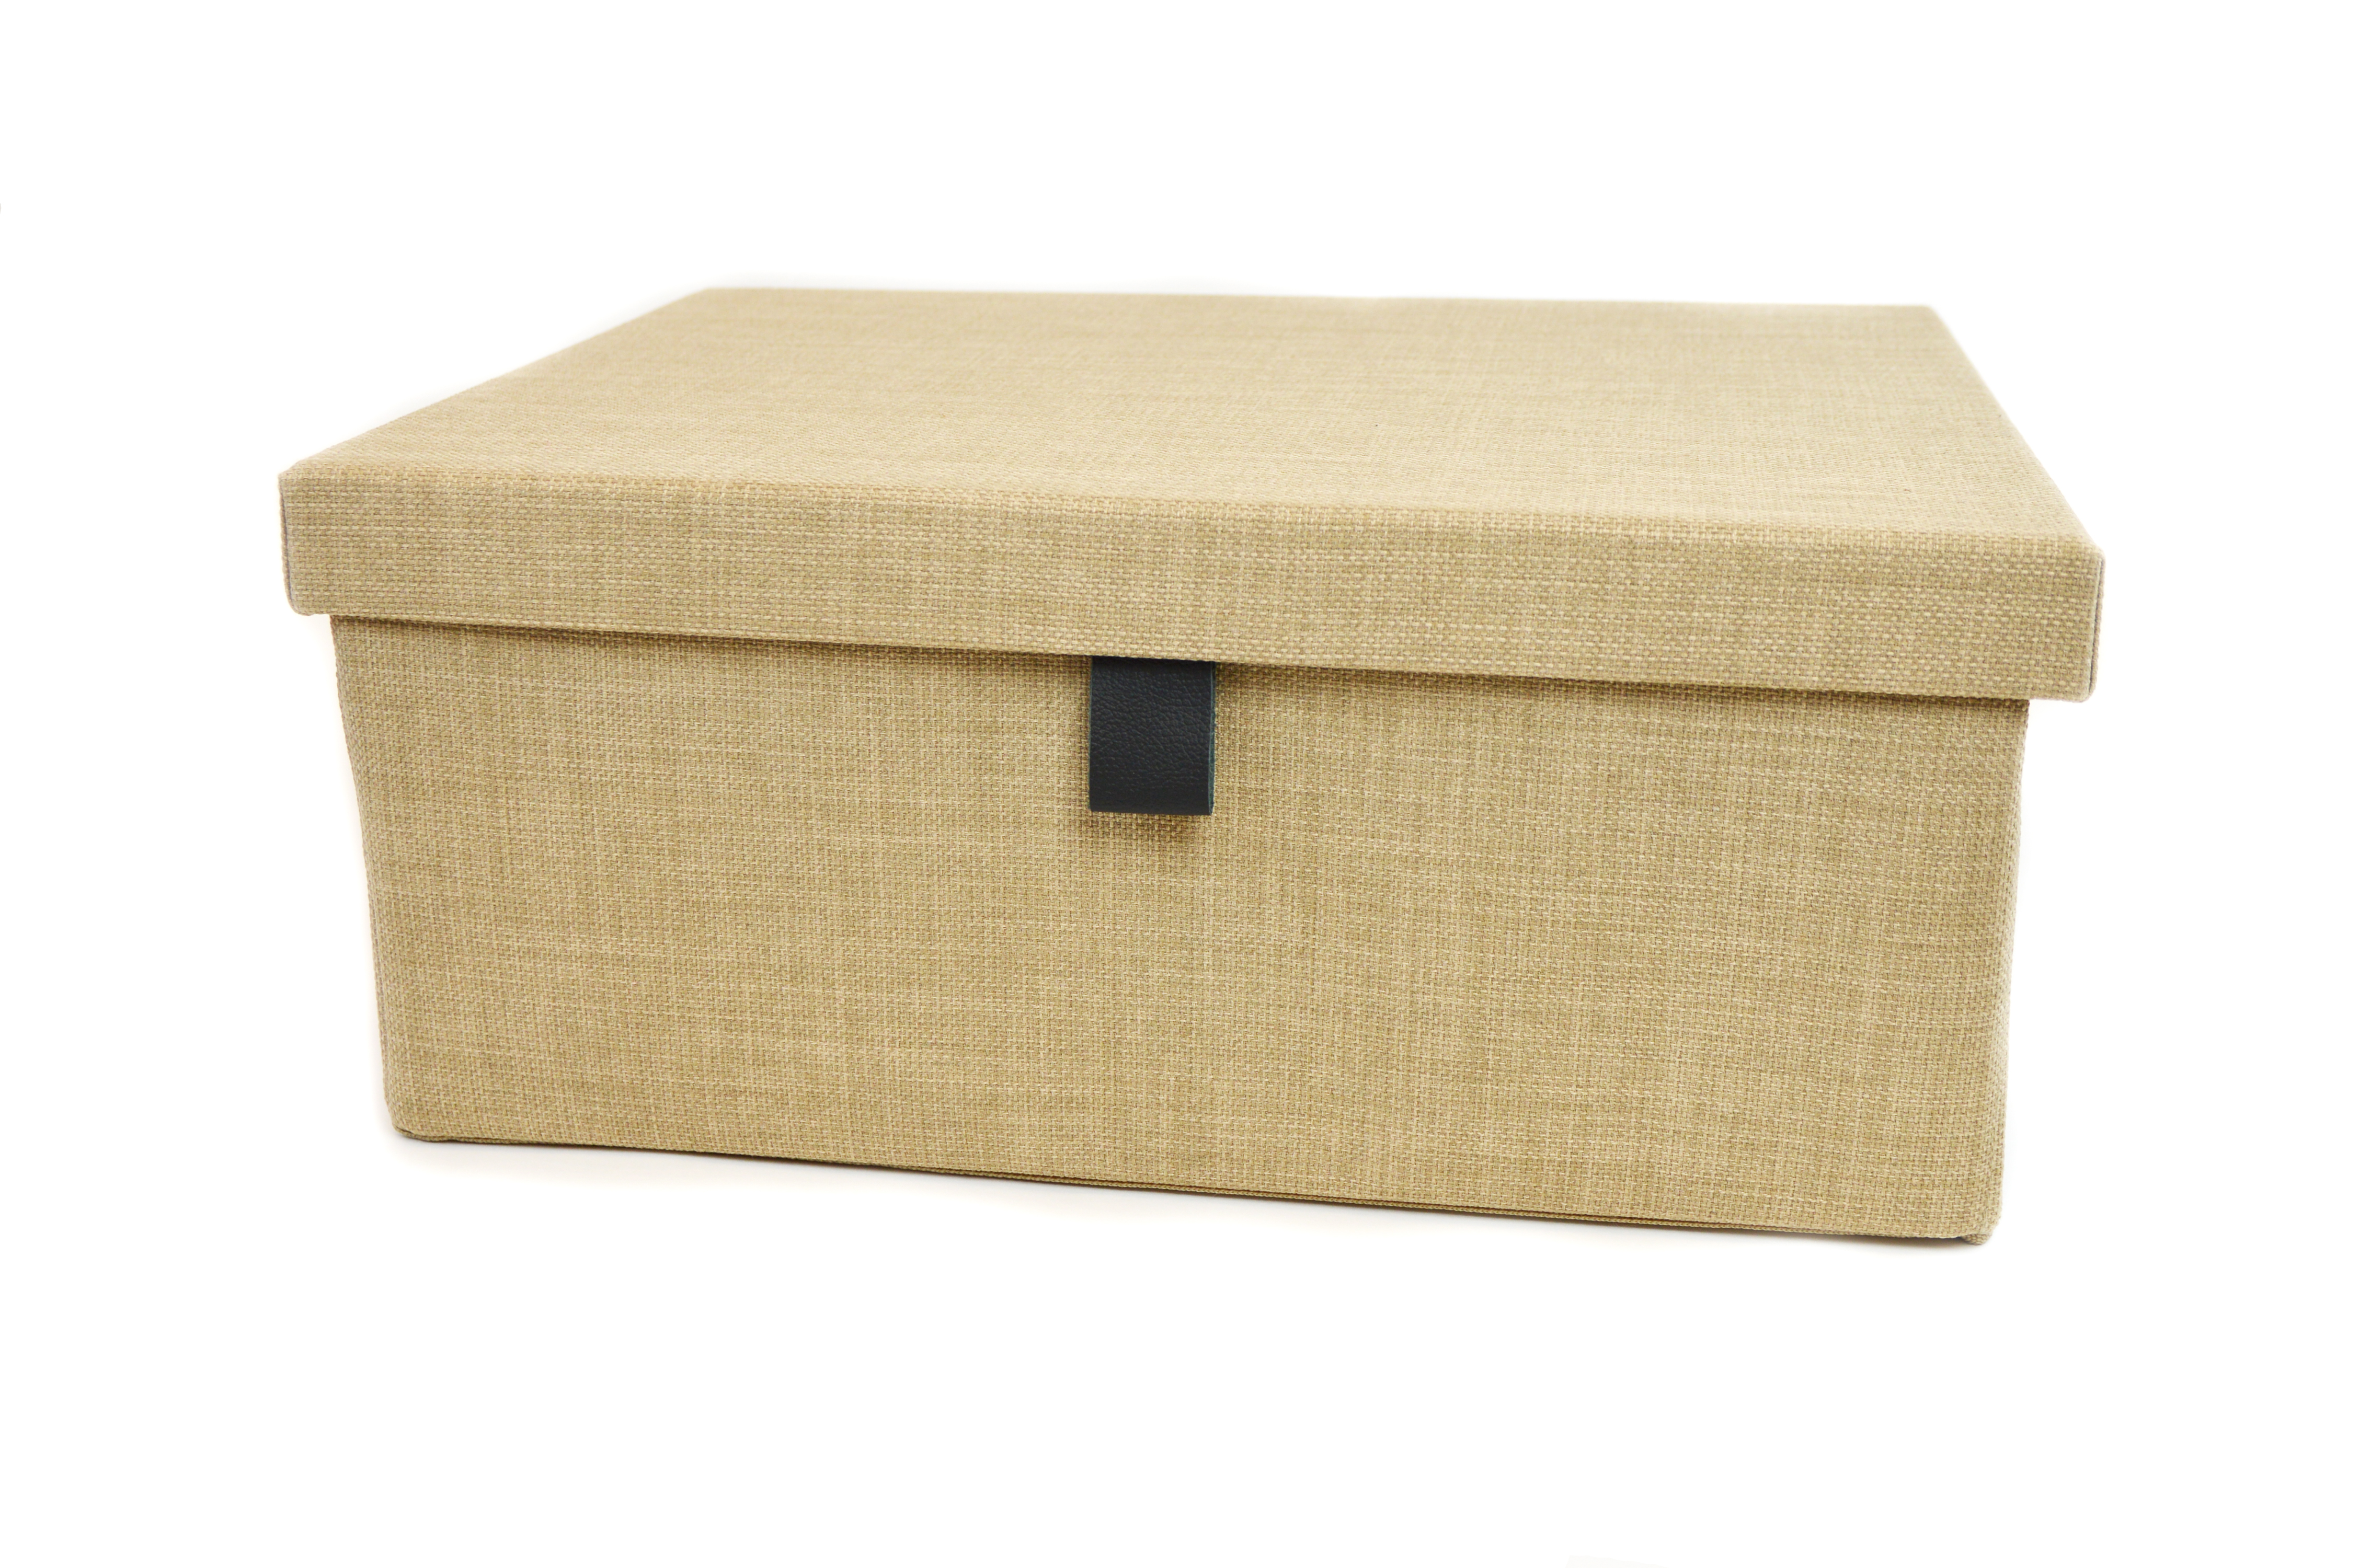 ENGAGE Fabric Storage Box in Beach